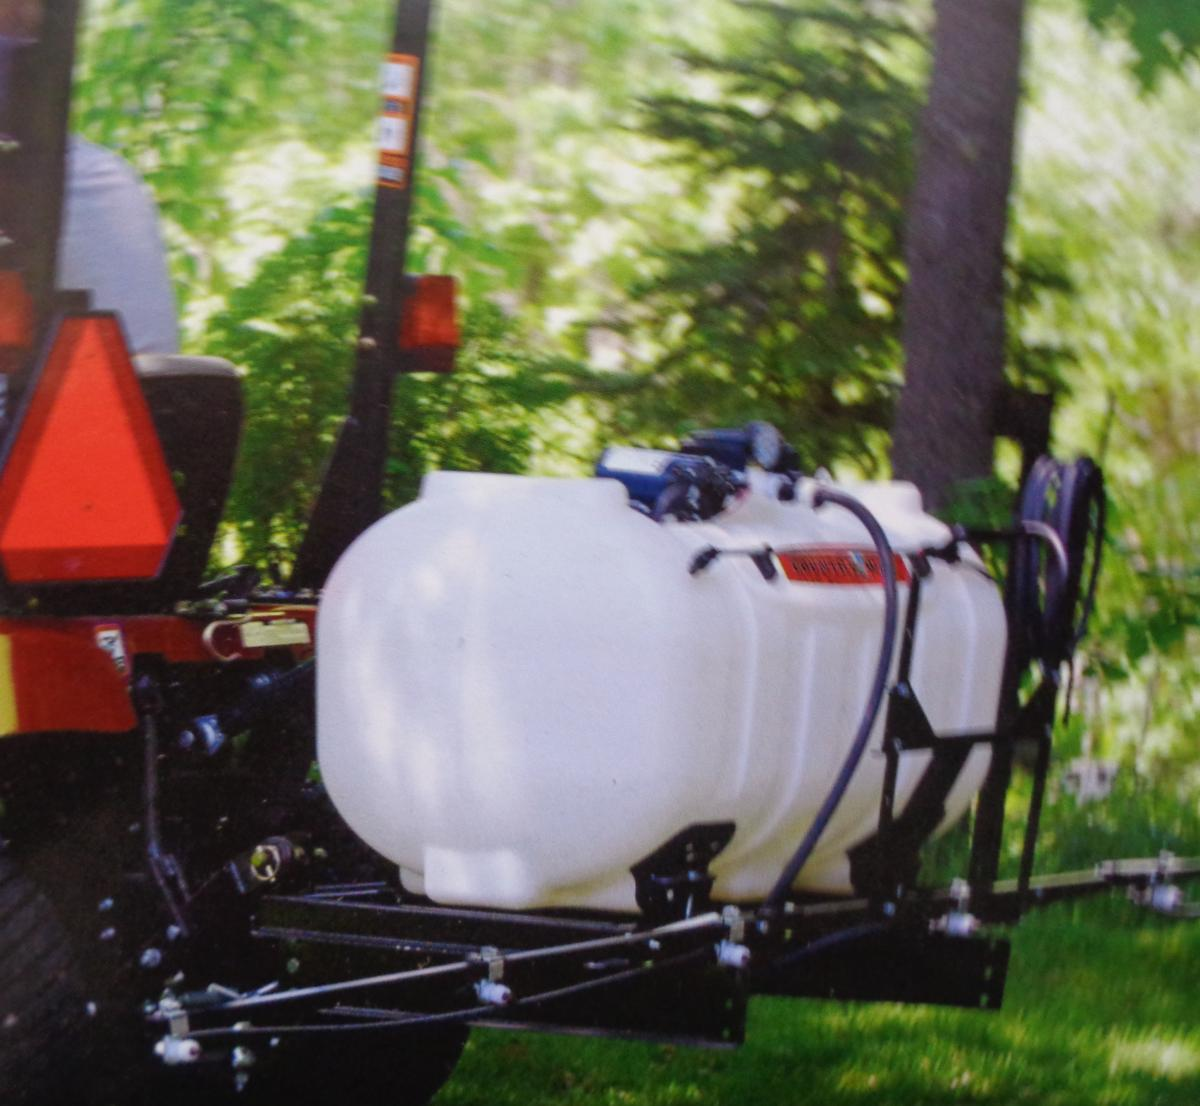 Large white plastic sprayer on an ATV with neon orange safety triangle.